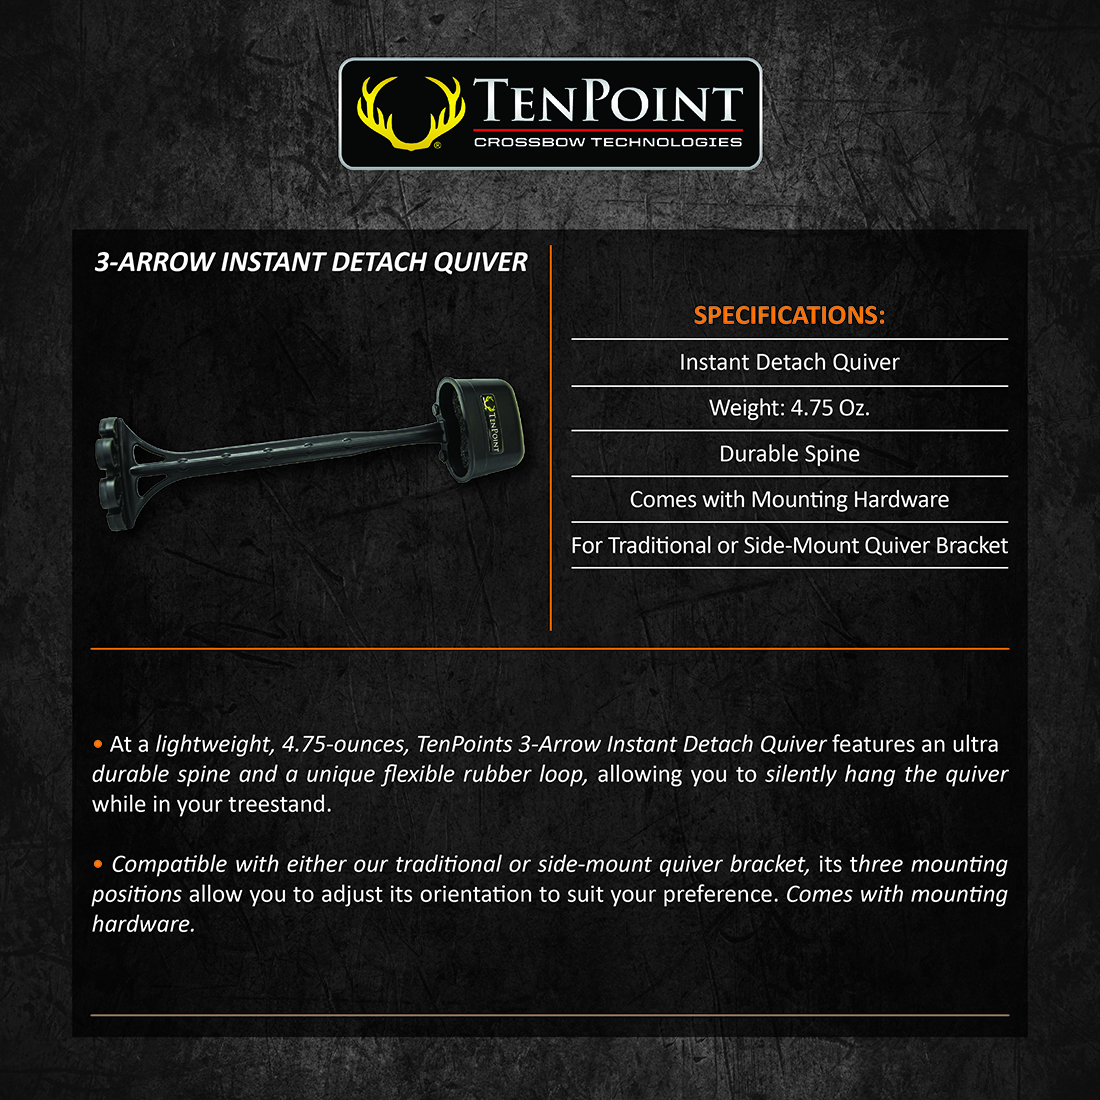 TenPoint_3Arrow_Quiver_Product_Description